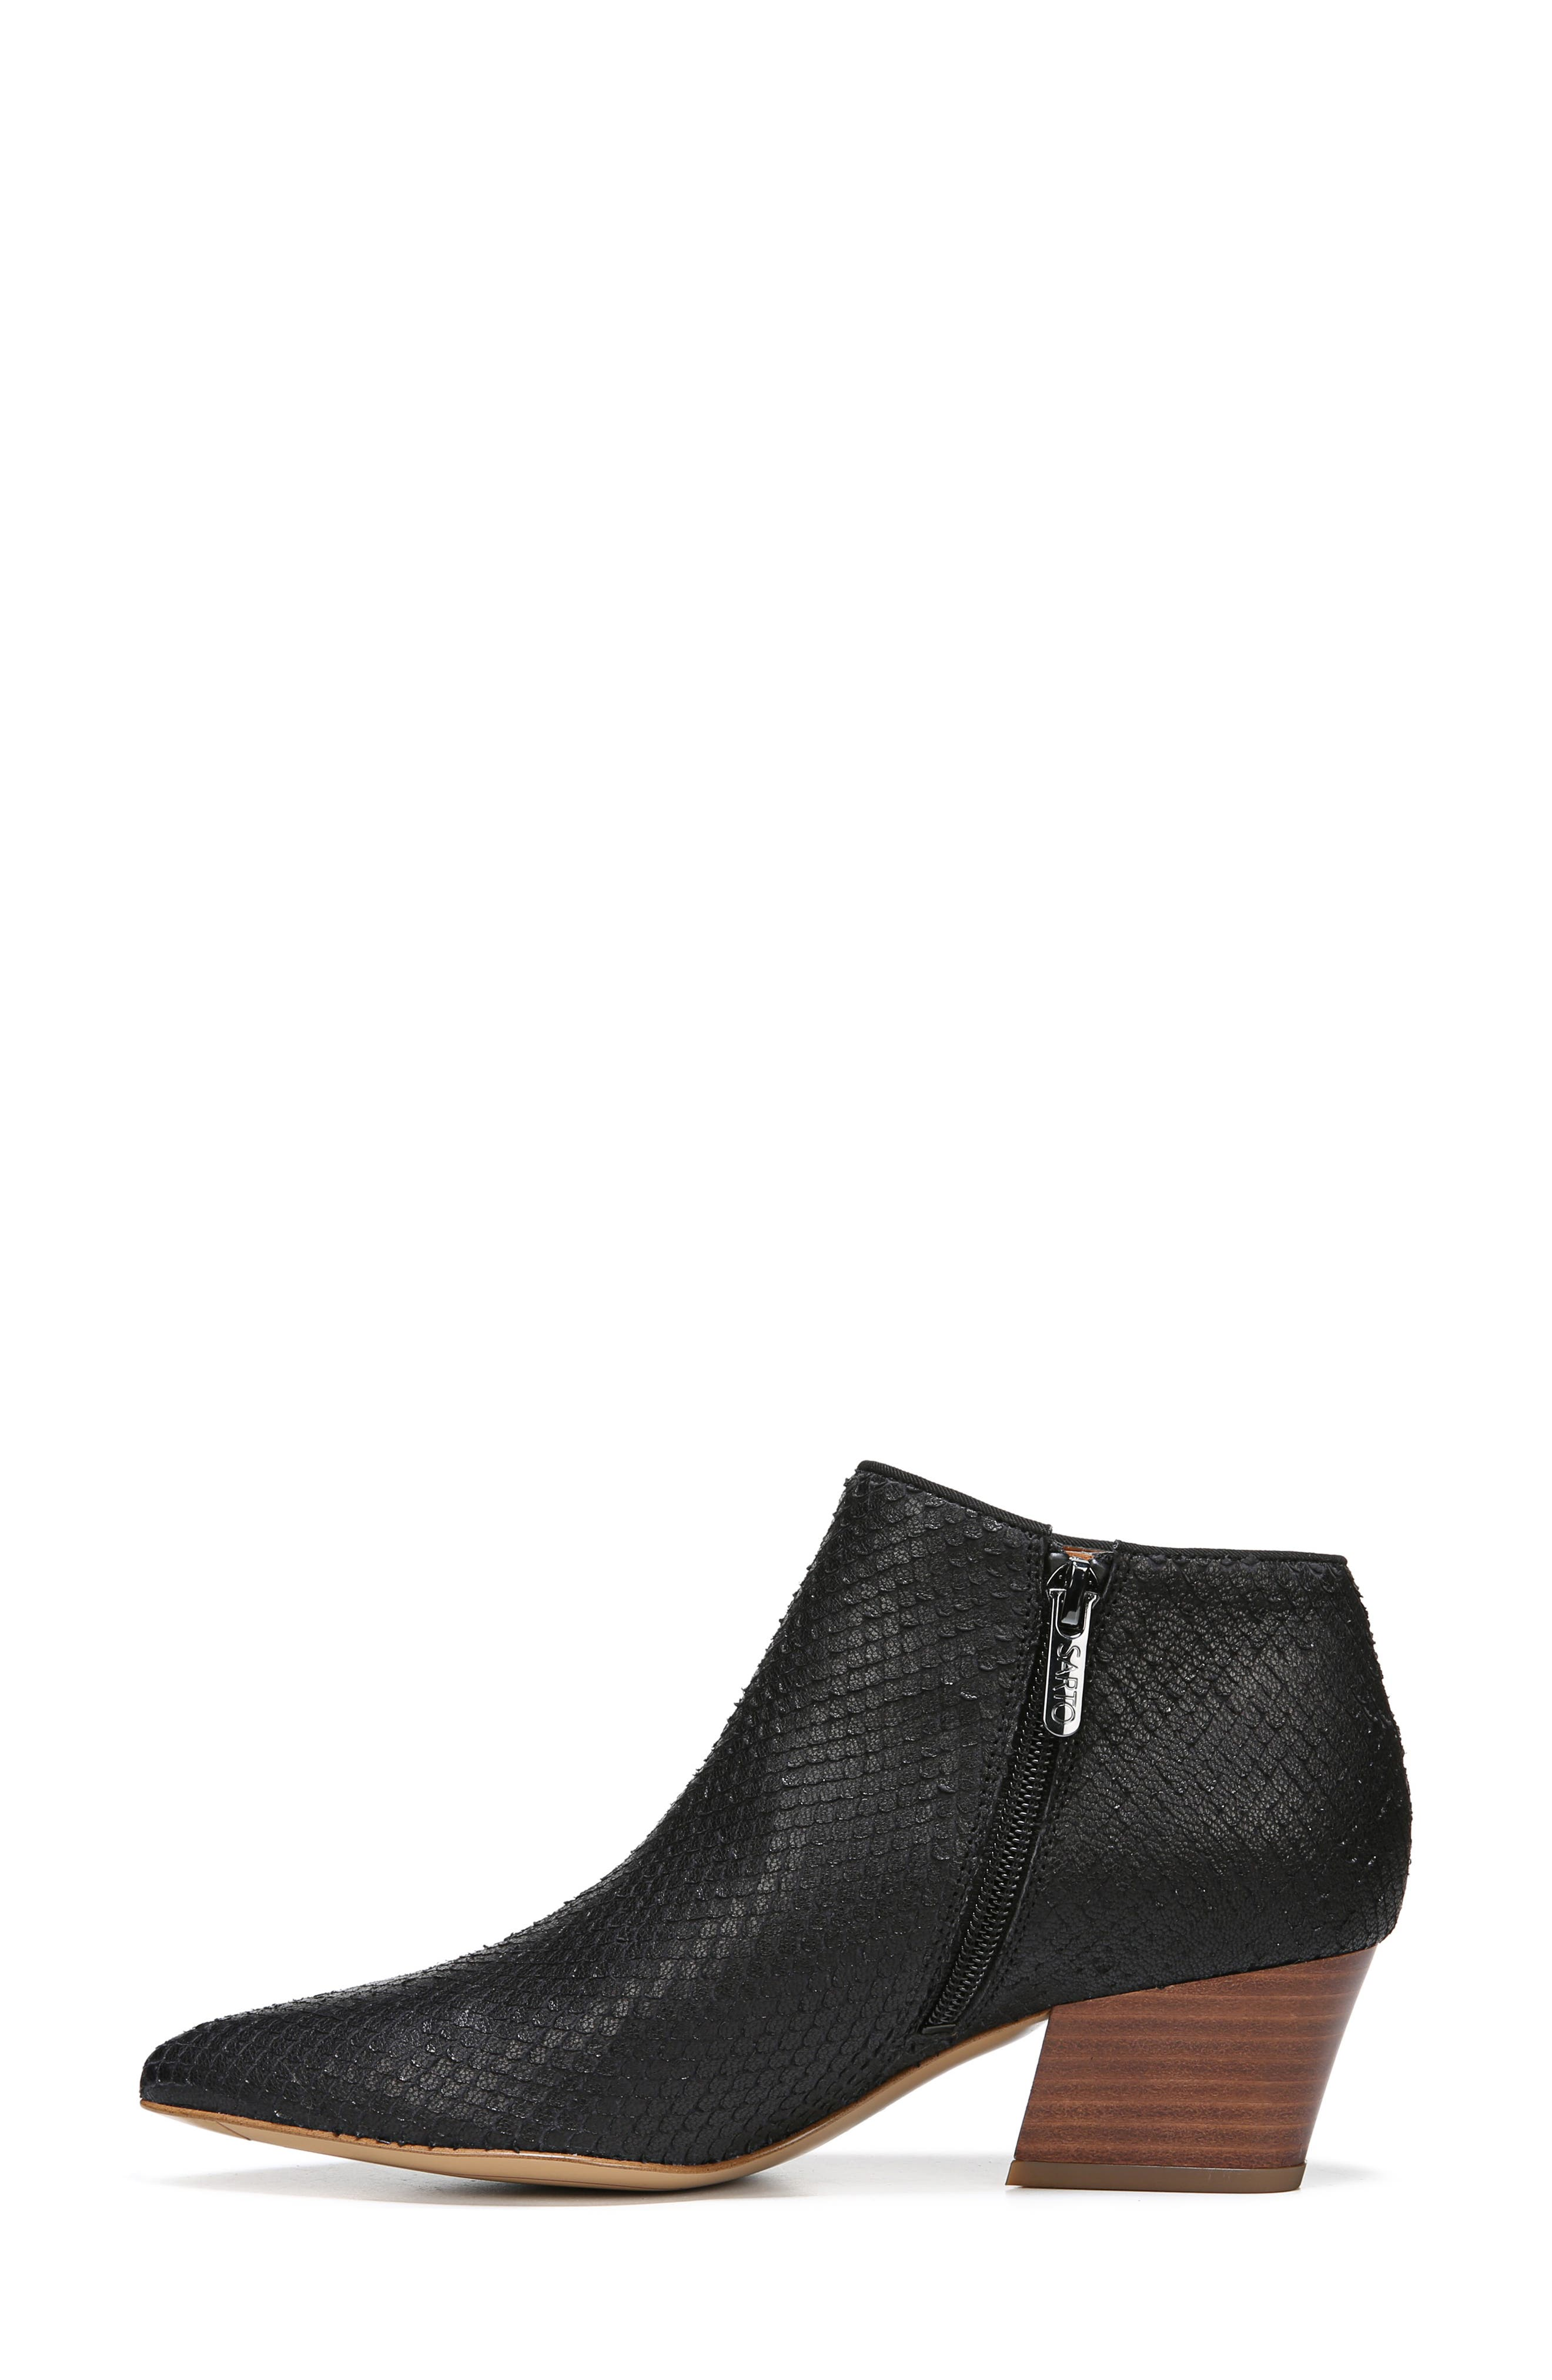 Lowe Bootie,                             Alternate thumbnail 7, color,                             BLACK SNAKE PRINT LEATHER